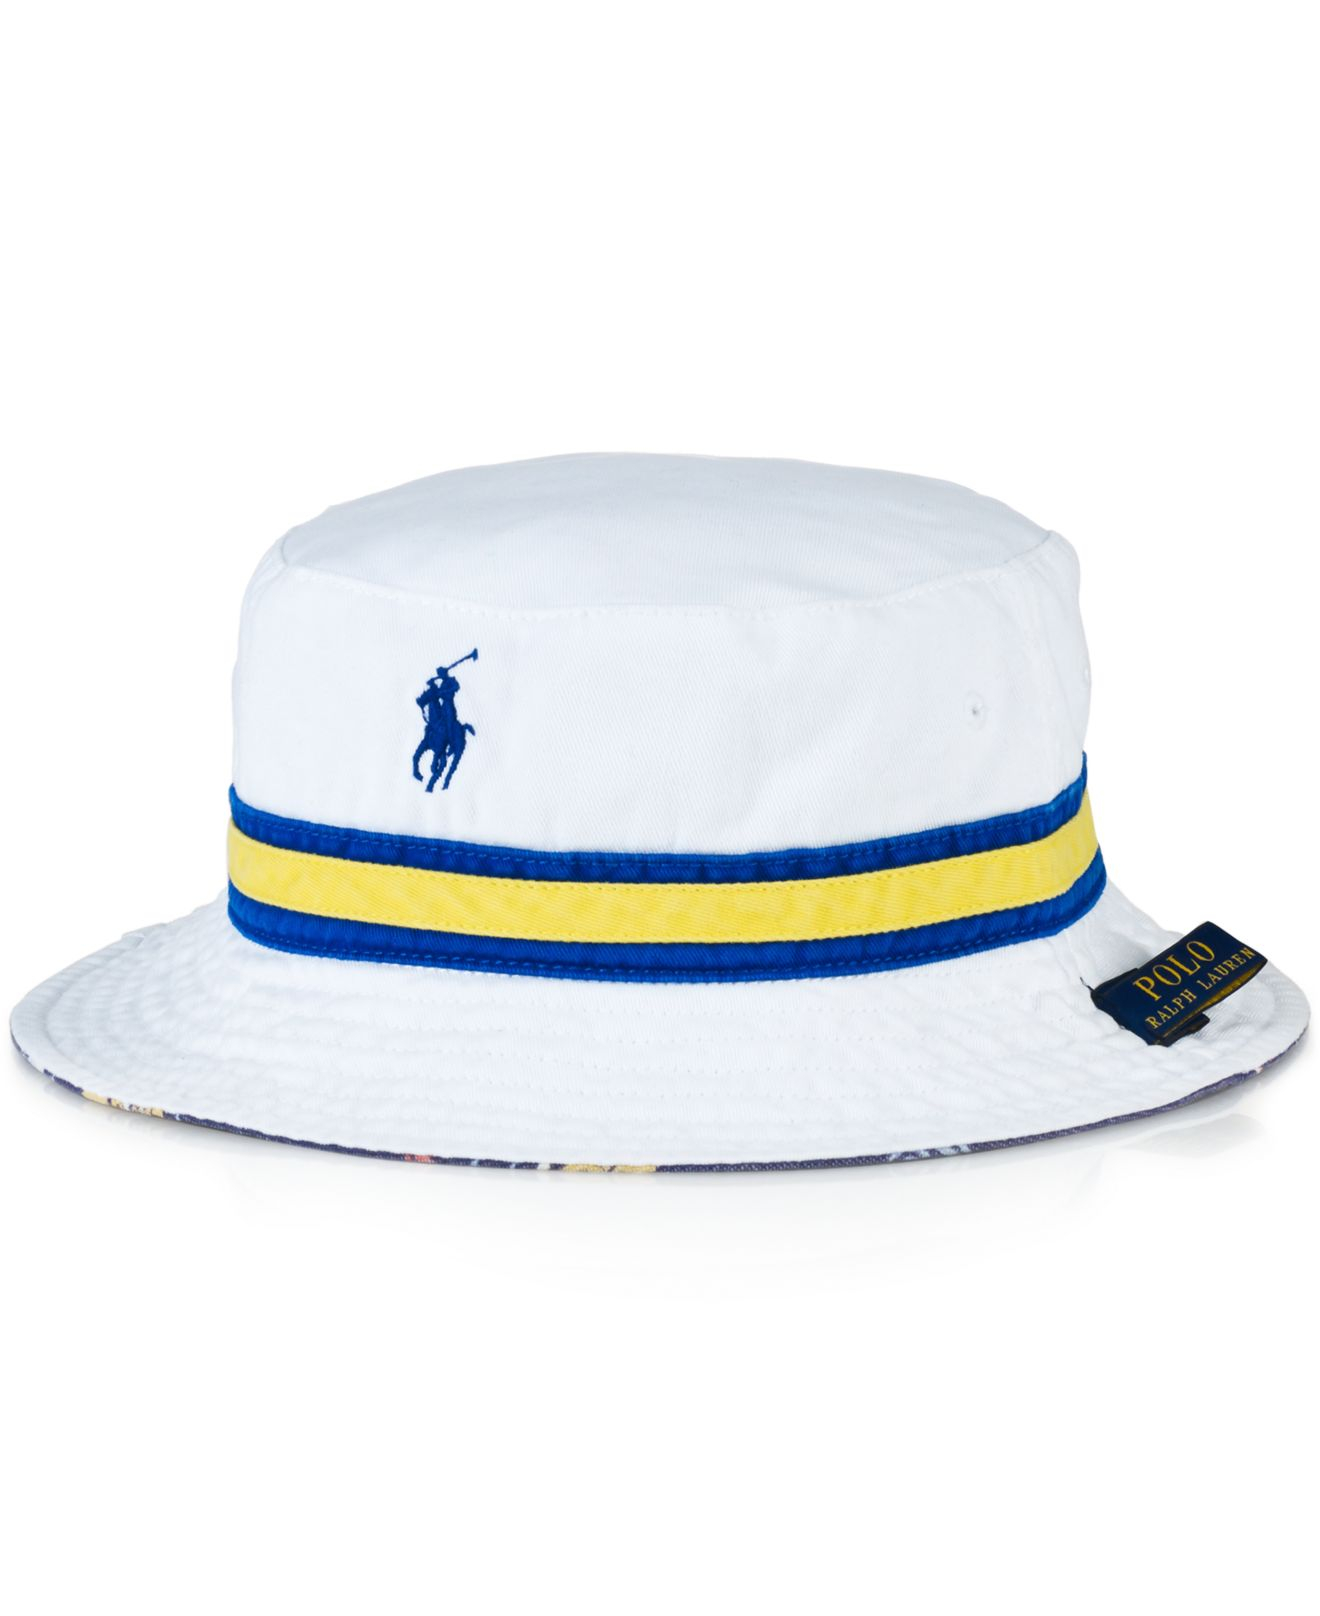 16dc6c824db57 ... authentic lyst polo ralph lauren reversible bucket hat in white for men  7a687 7caf5